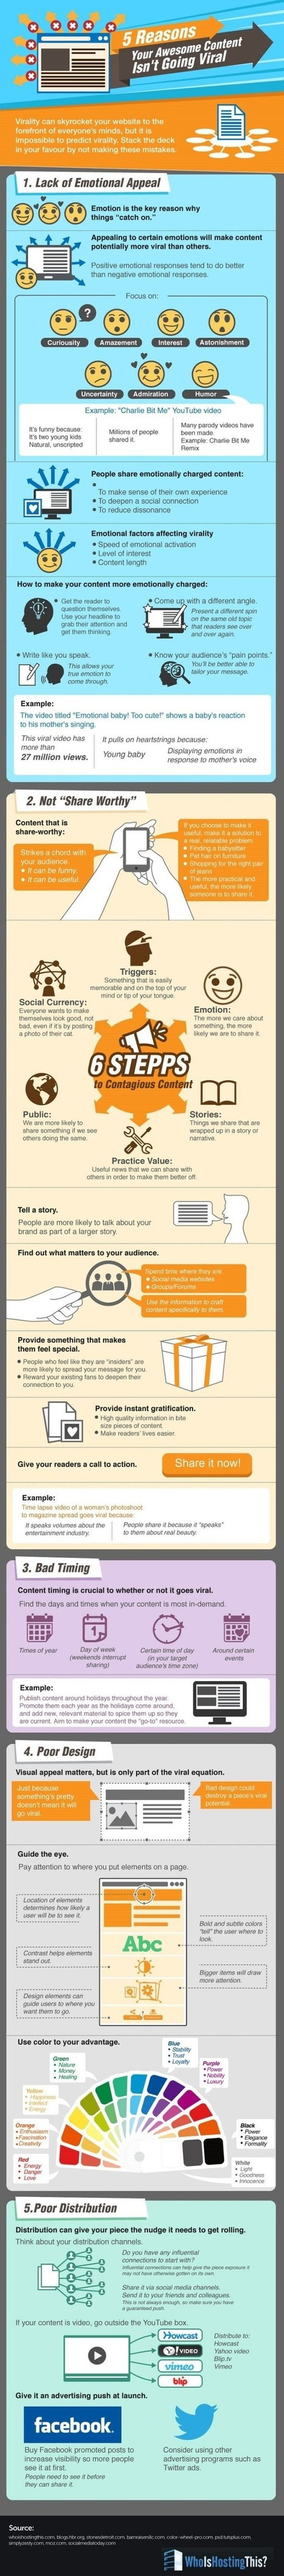 Check These 5 Tactics to Make Your Content Go Viral #infographic | Surviving Social Chaos | Scoop.it